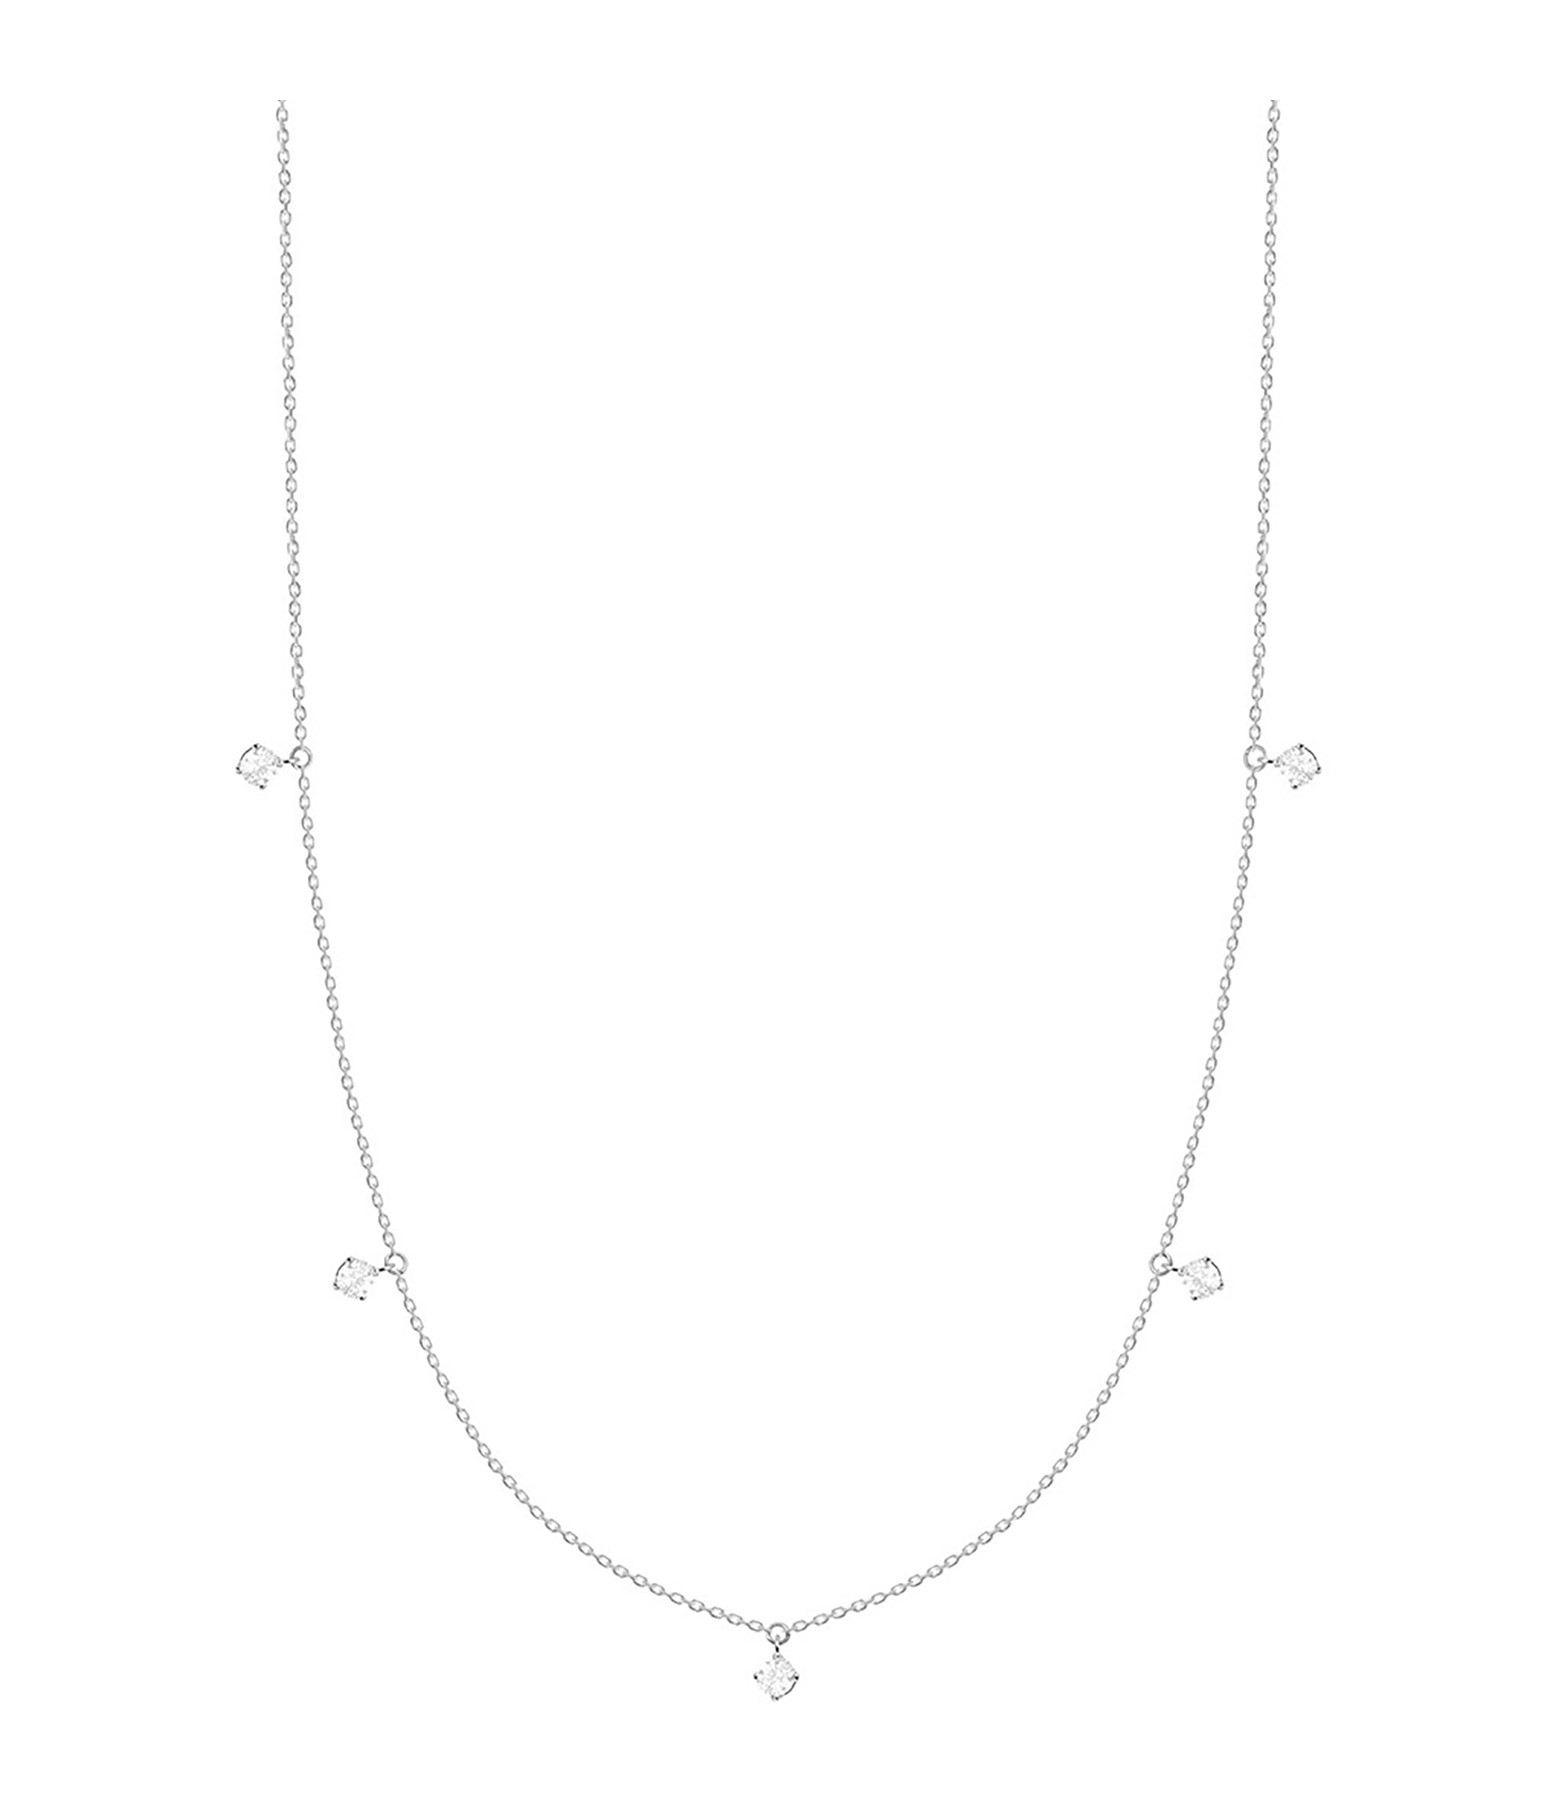 VANRYCKE - Collier Stardust Or Blanc 5 Diamants